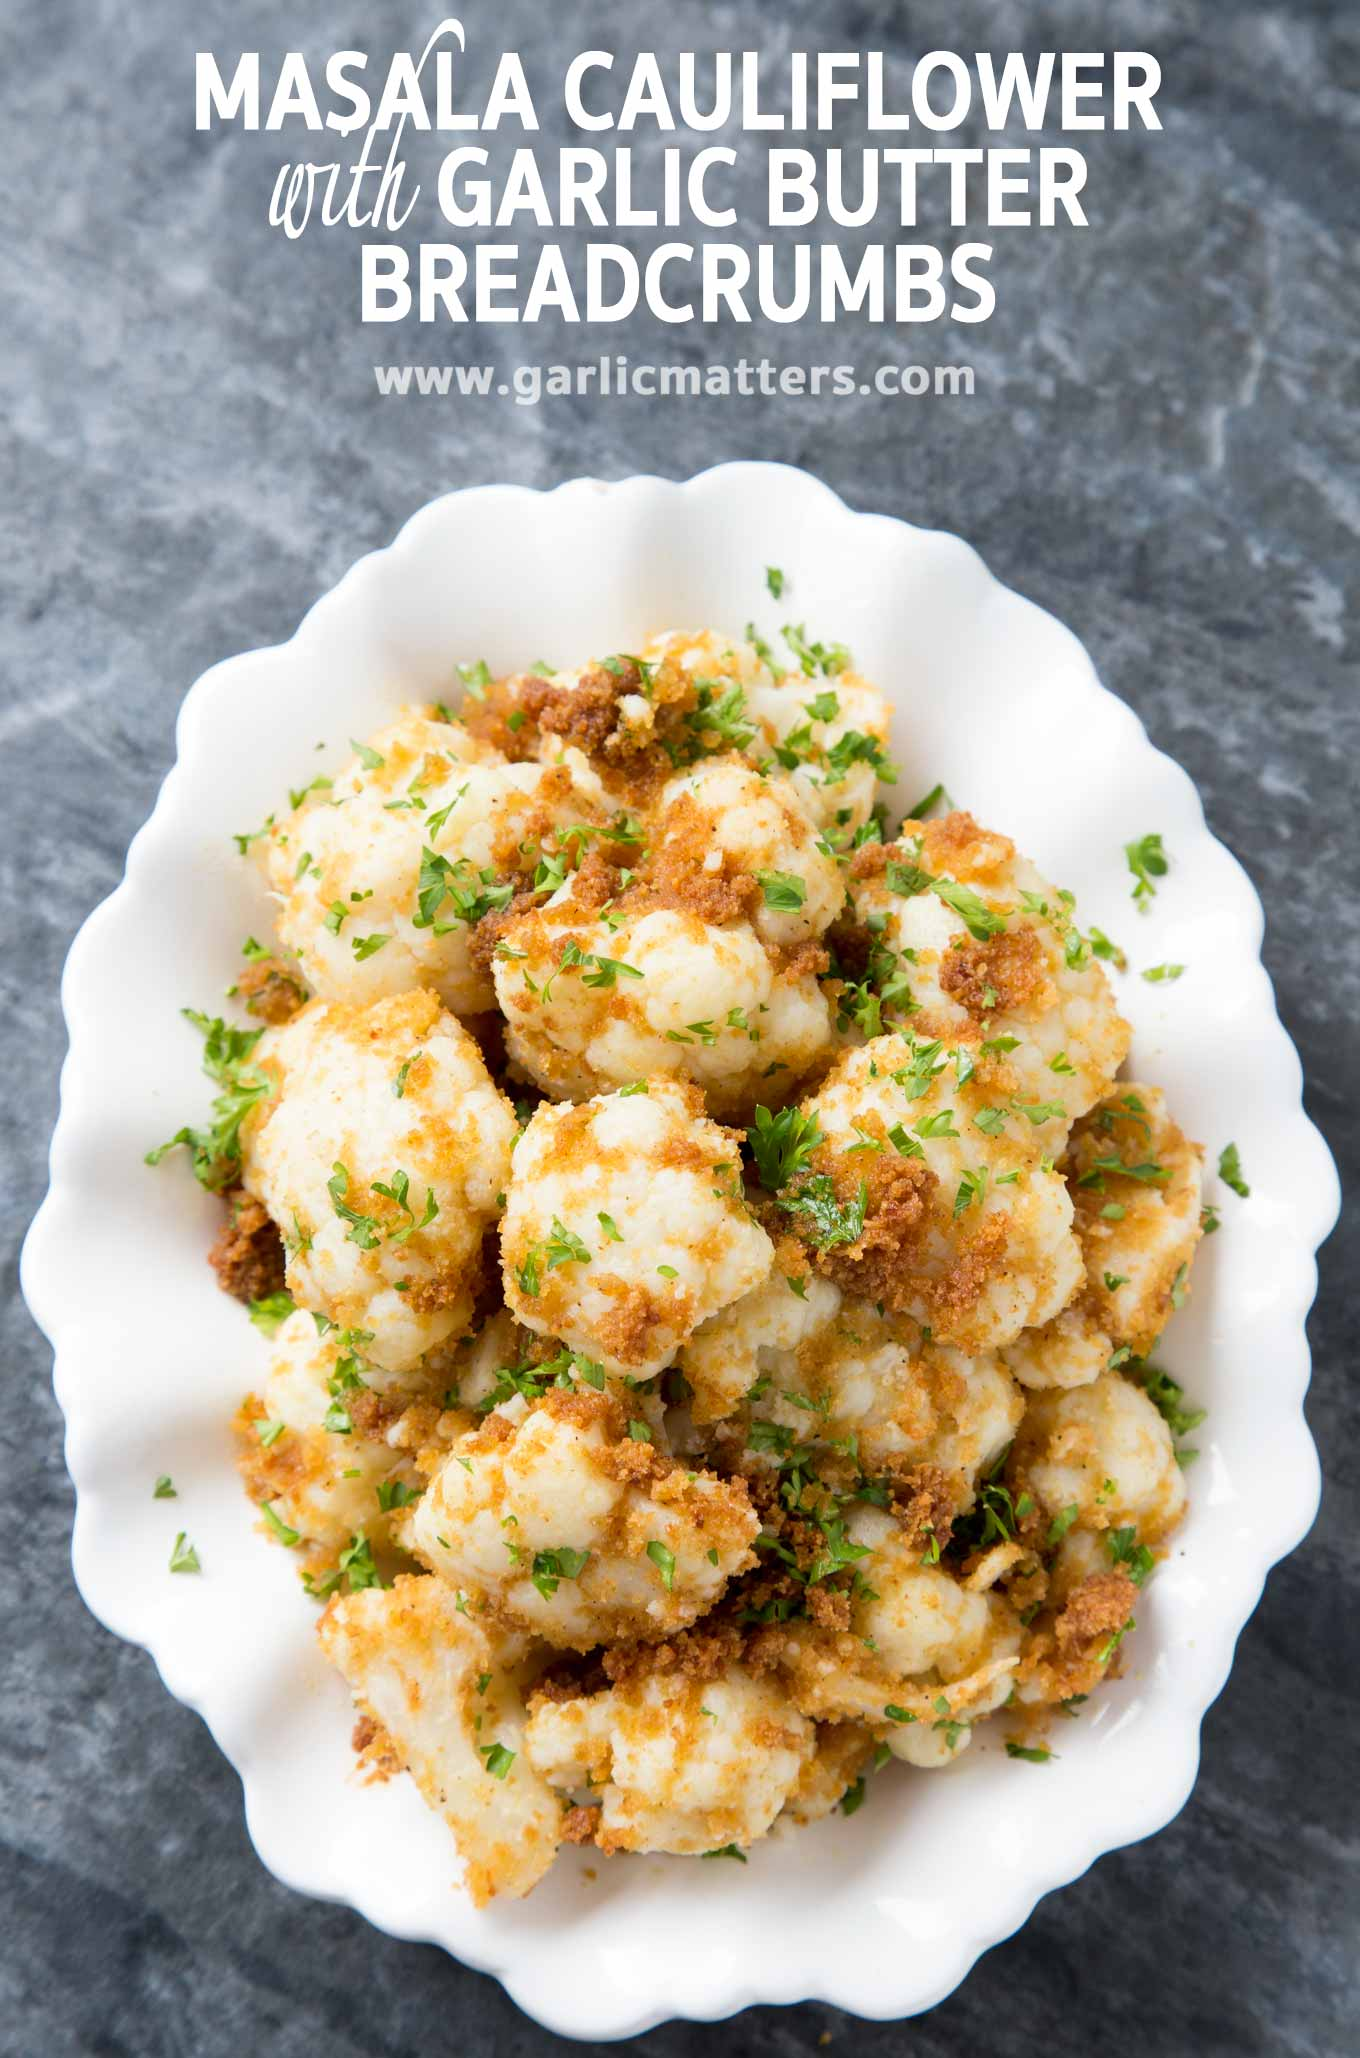 Simply delicious Masala Cauliflower with Garlic Butter Breadcrumbs recipe - delicious vegetarian dish ready in under 30 minutes.